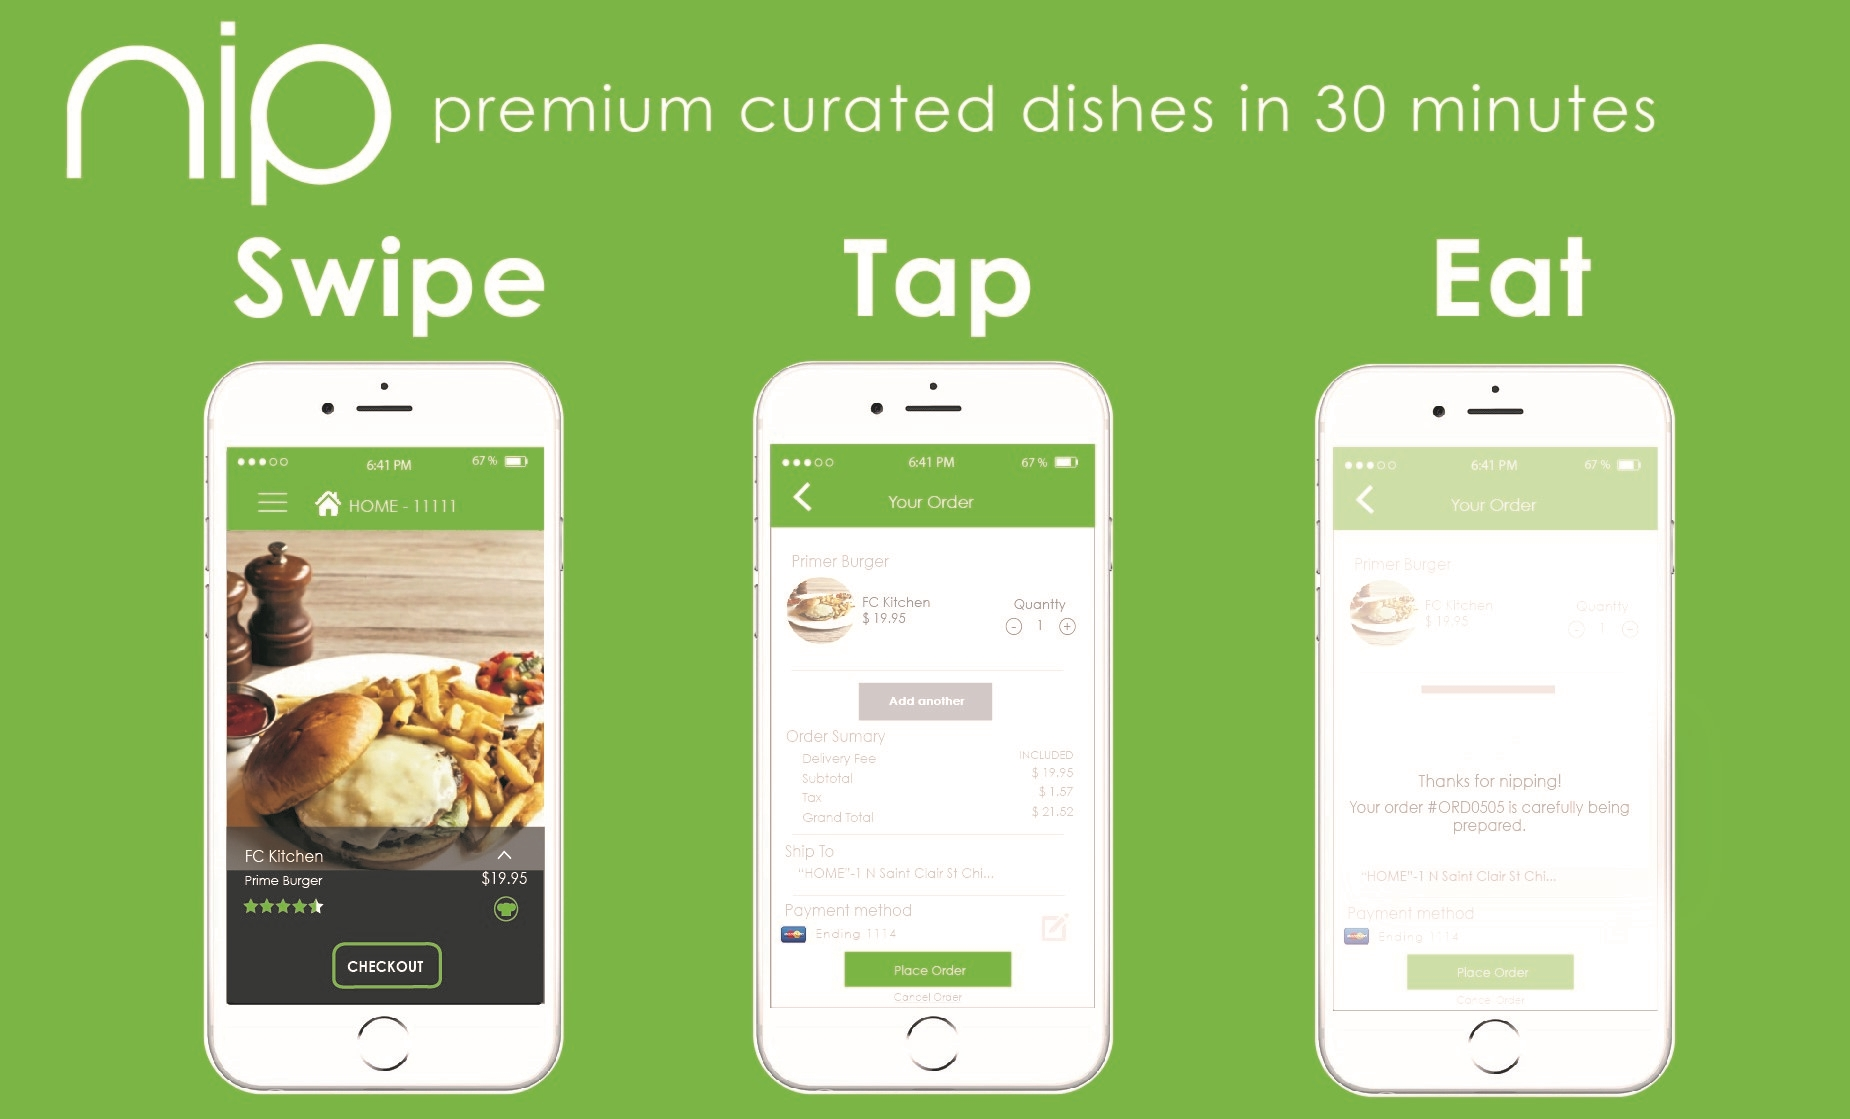 Nip- A Premium Experience Made As Easy As Swipe, Tap, Eat